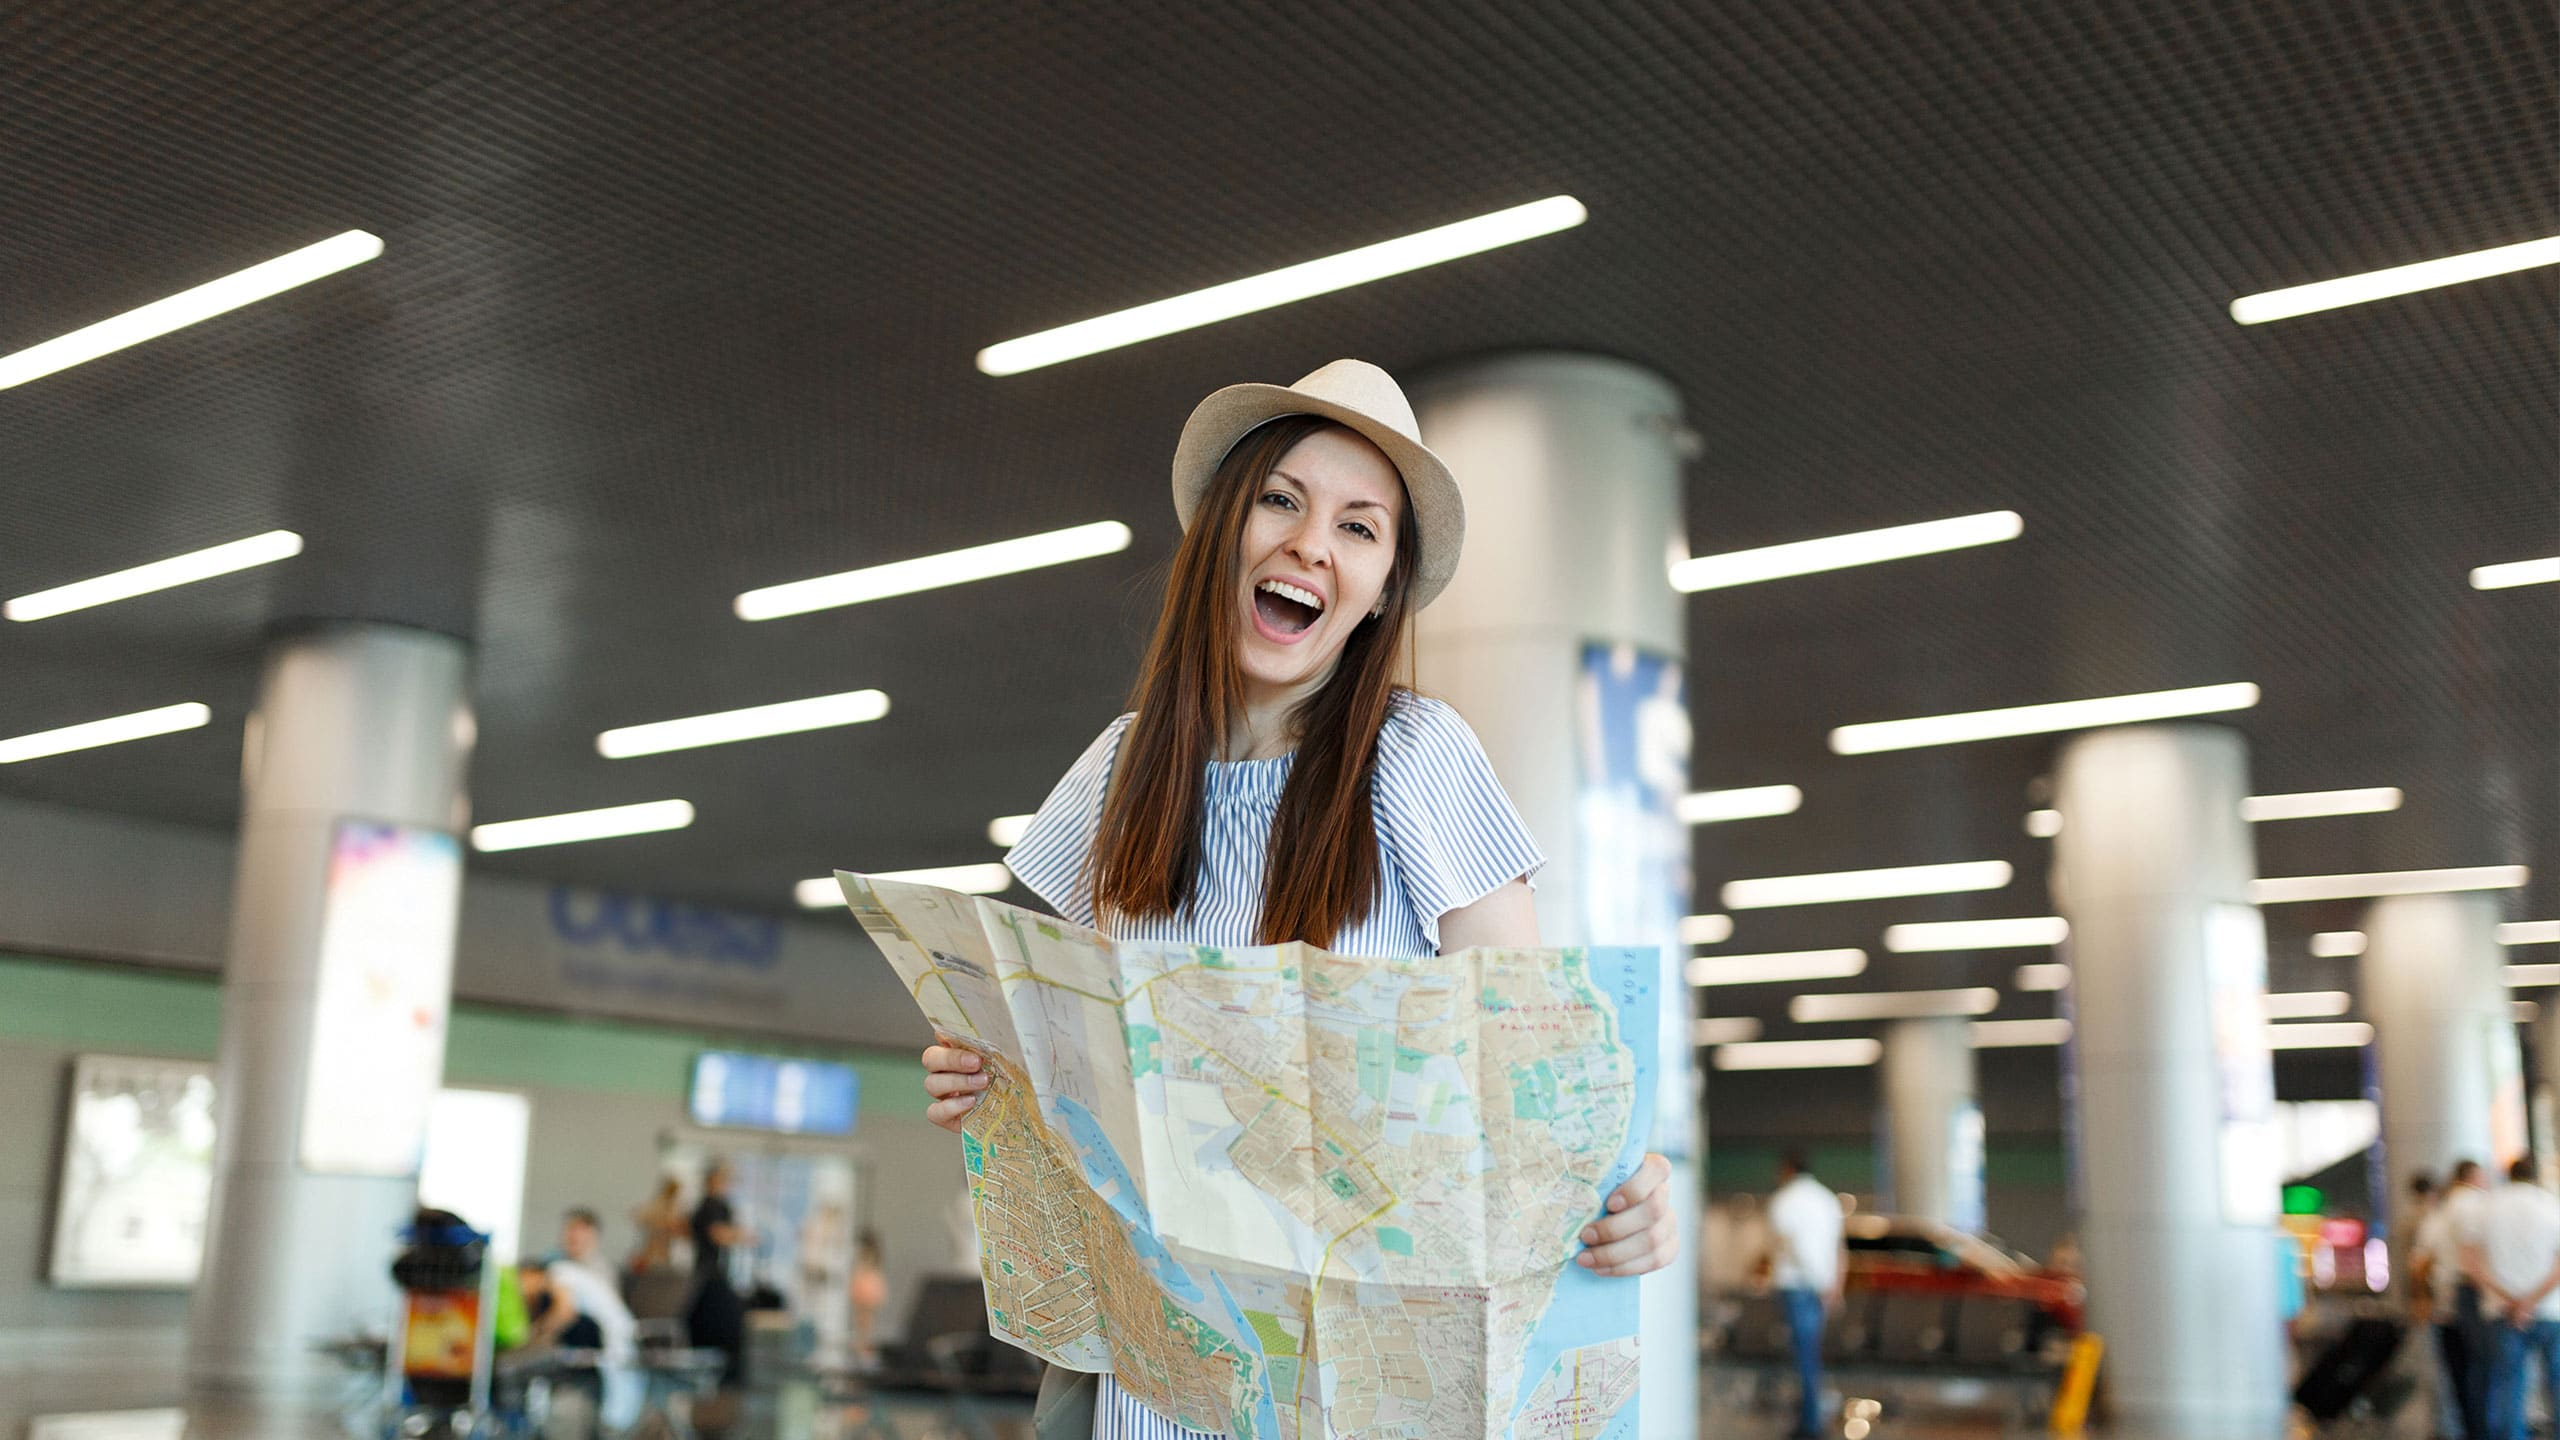 Travelling Foreigner with roadmap